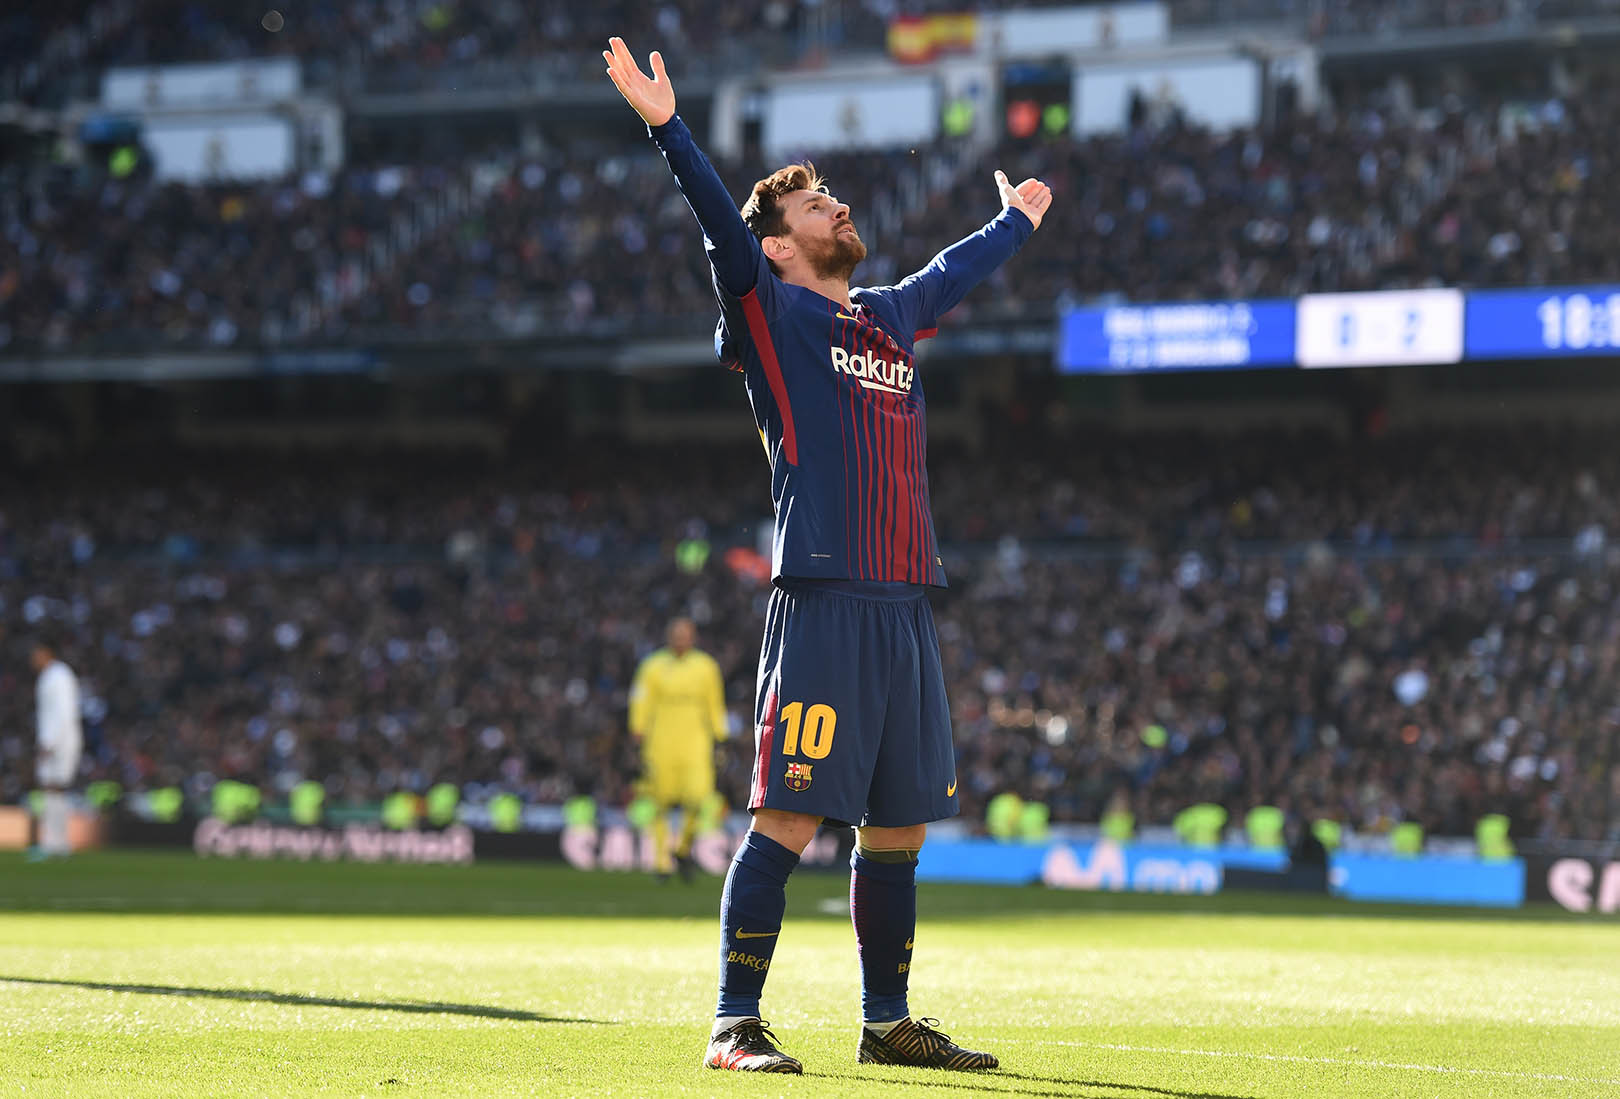 Messi Celebrates again @Bernabeu in 2018